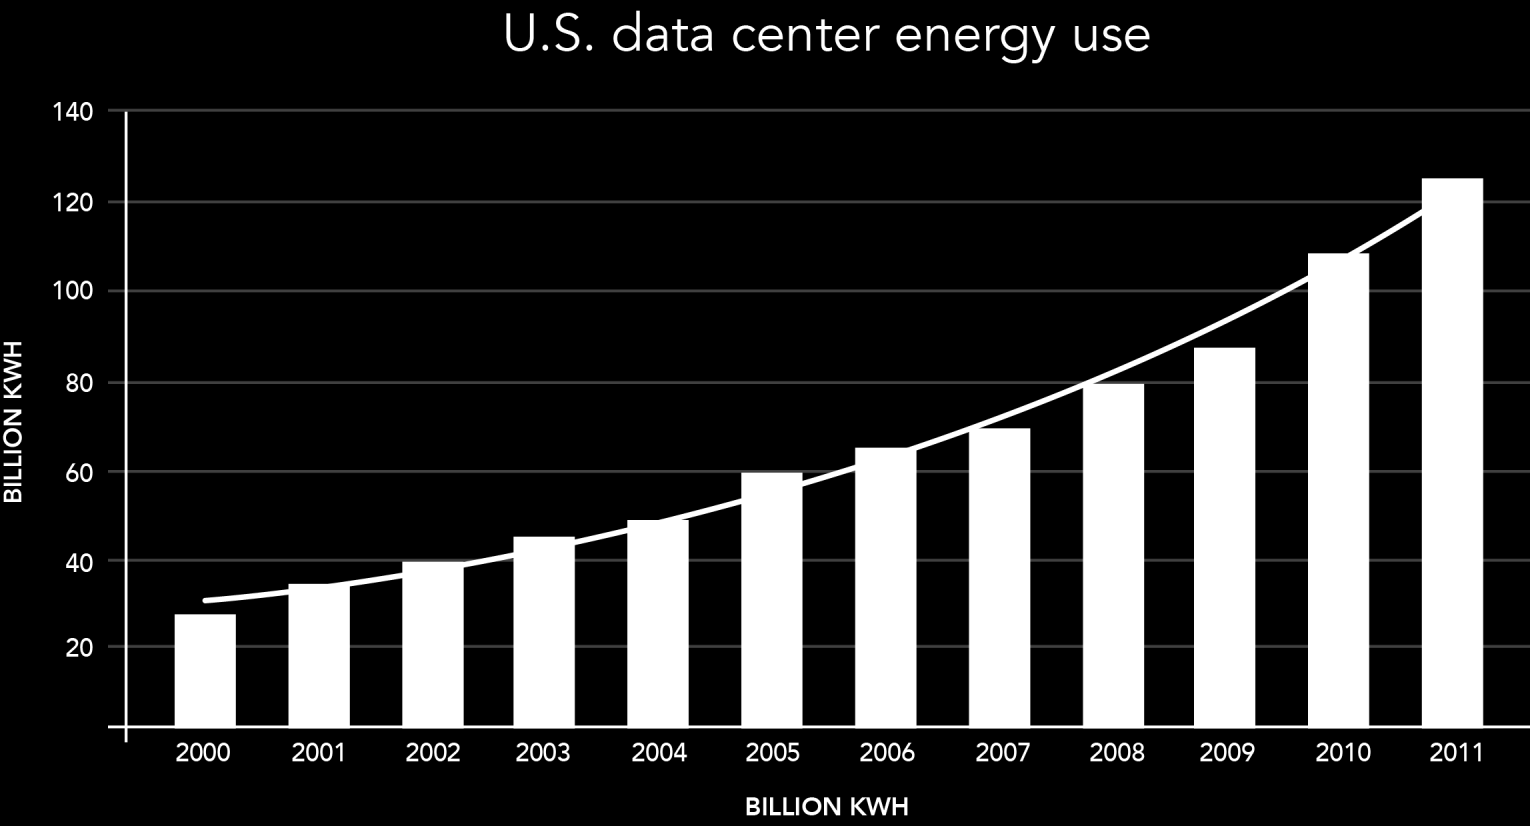 Reduce energy costs Create culture of continuing investment and management. DID? U.S. YOU KNOW data centers consume a growing portion of the U.S. energy/electricity supply due to growing demand for the services they provide.